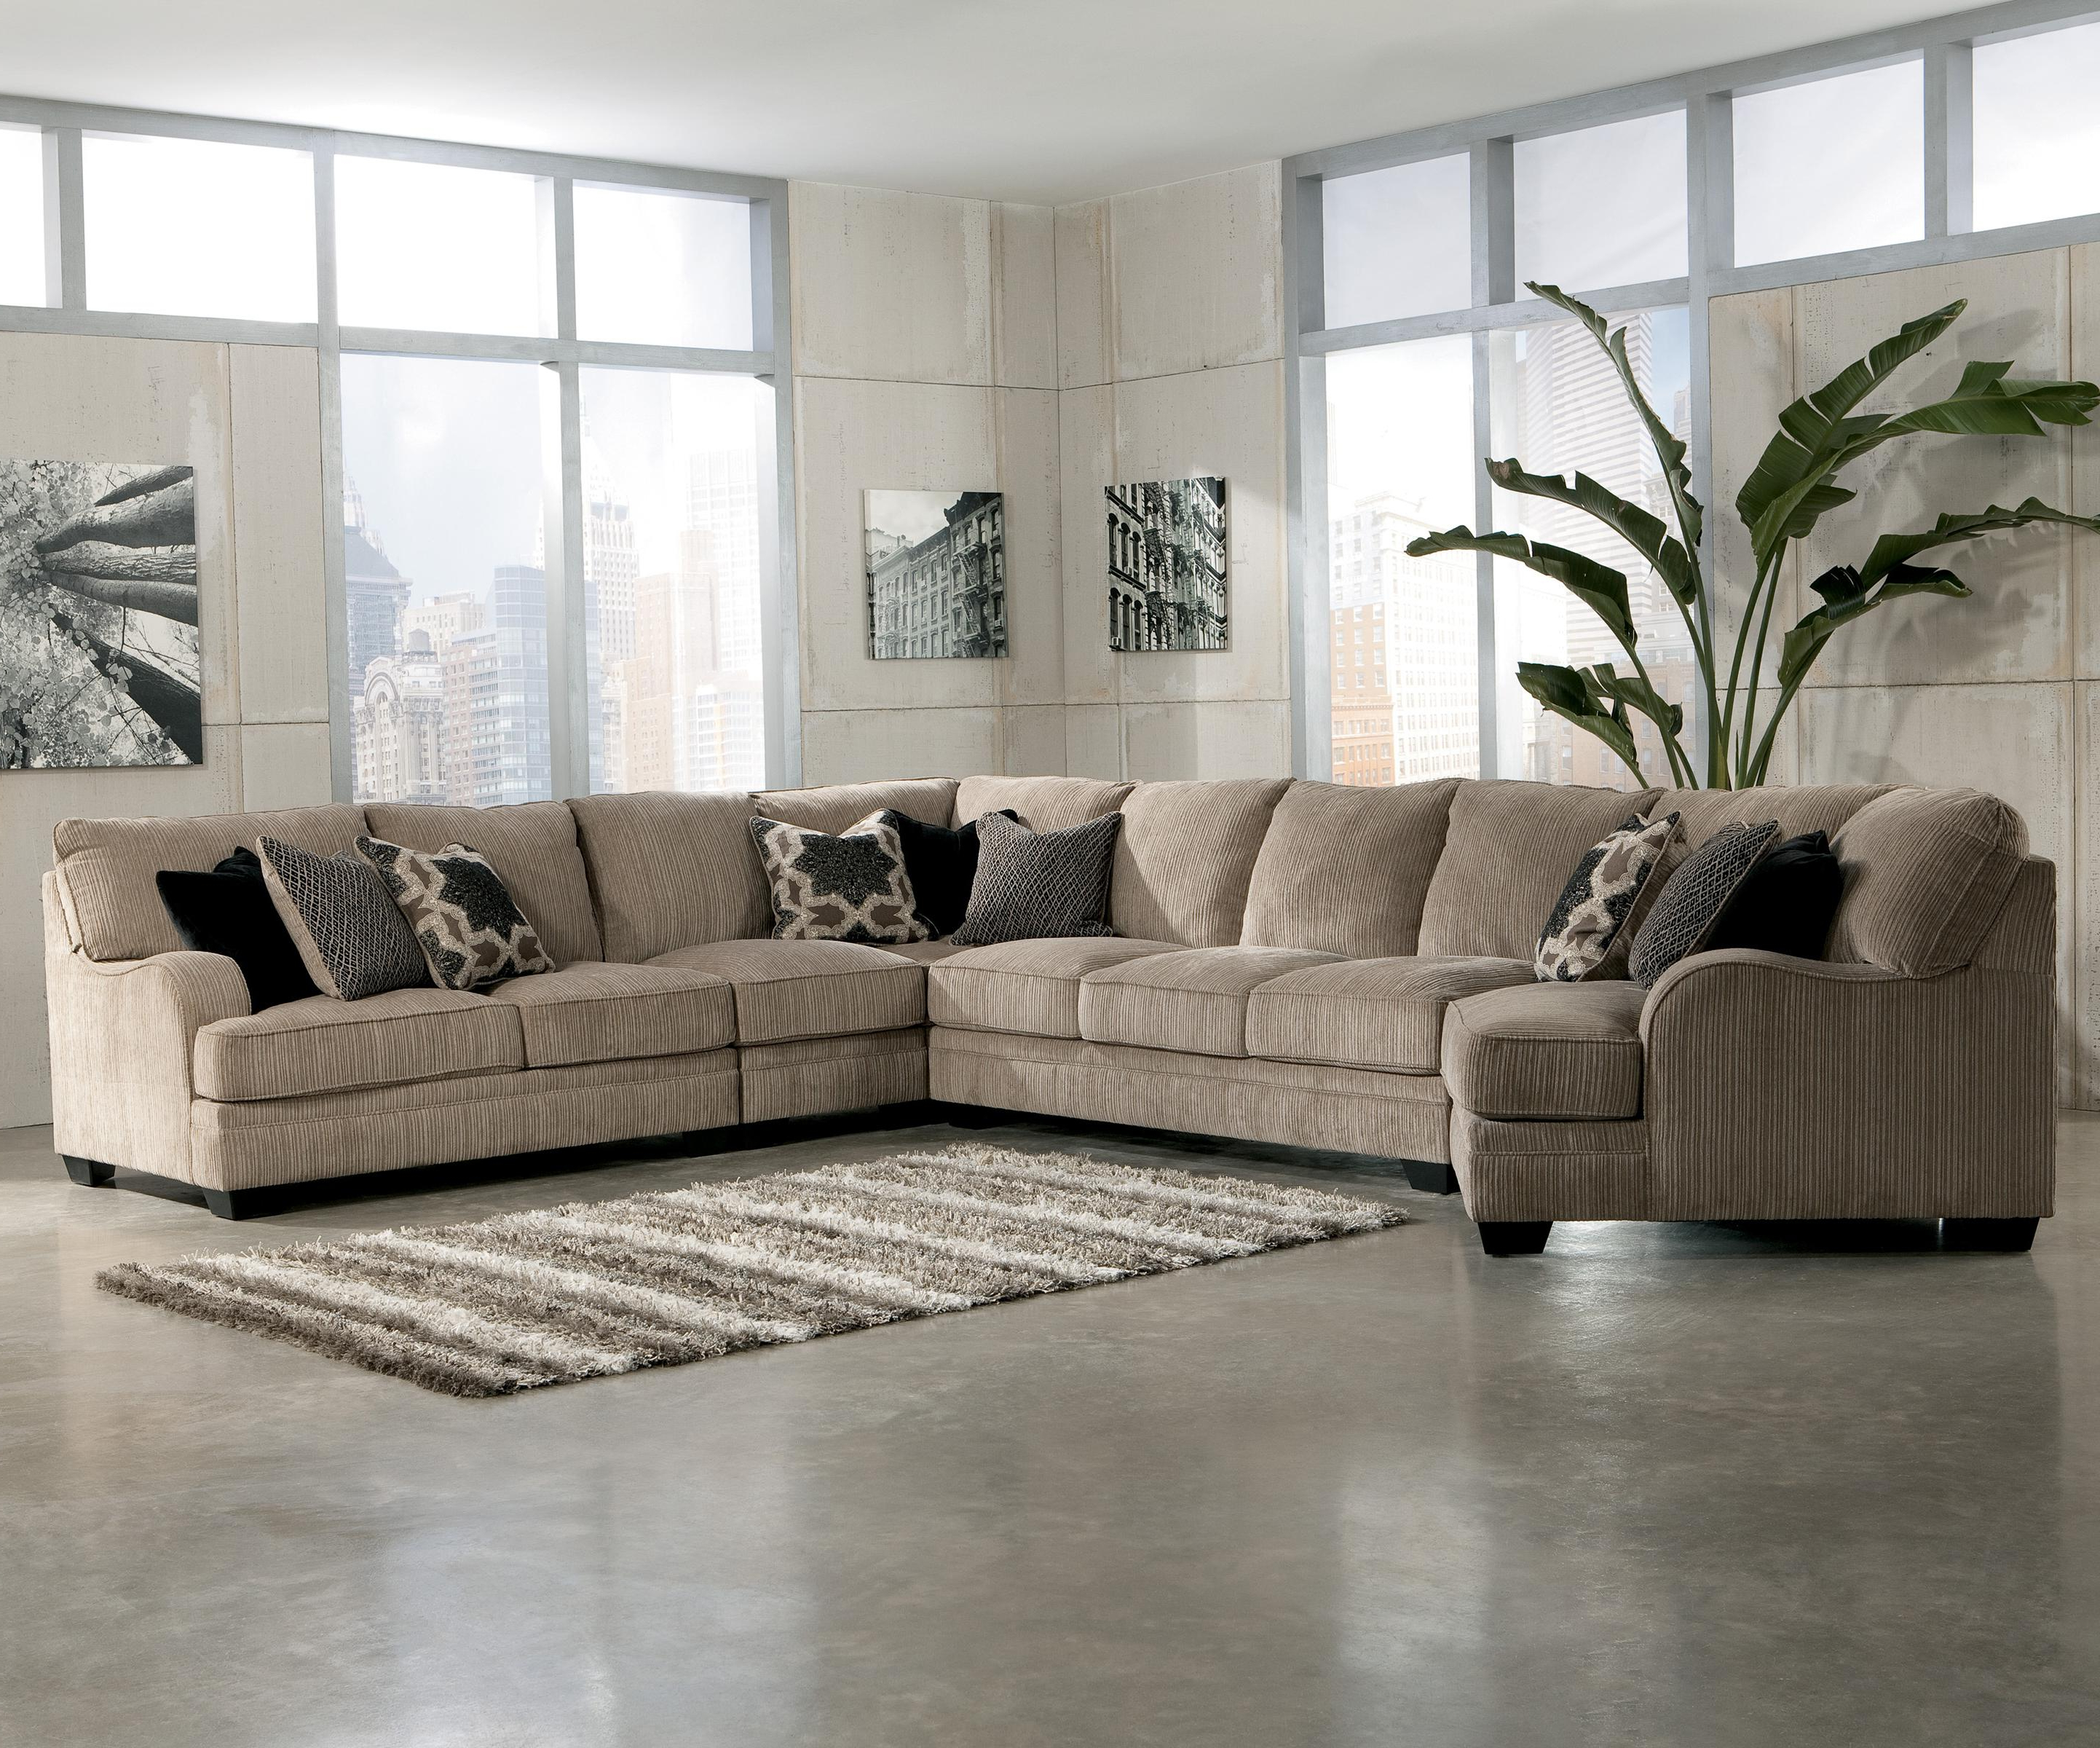 Trendy Norfolk Grey 6 Piece Sectionals With Raf Chaise Throughout Signature Designashley Katisha – Platinum 5 Piece Sectional Sofa (Gallery 18 of 20)